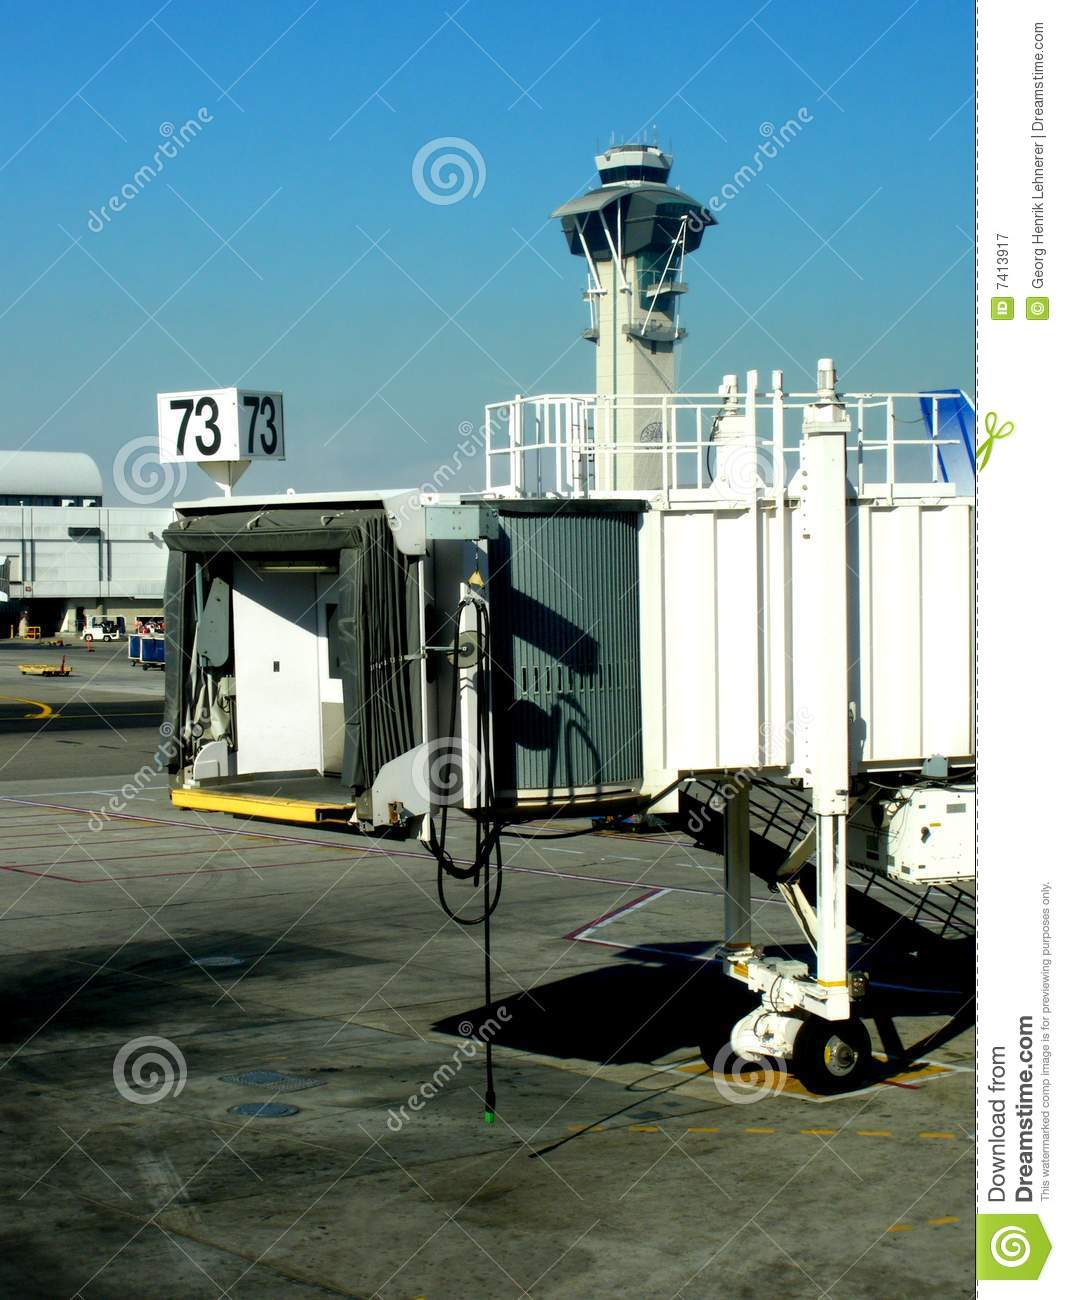 Jetway Royalty Free Stock Photography